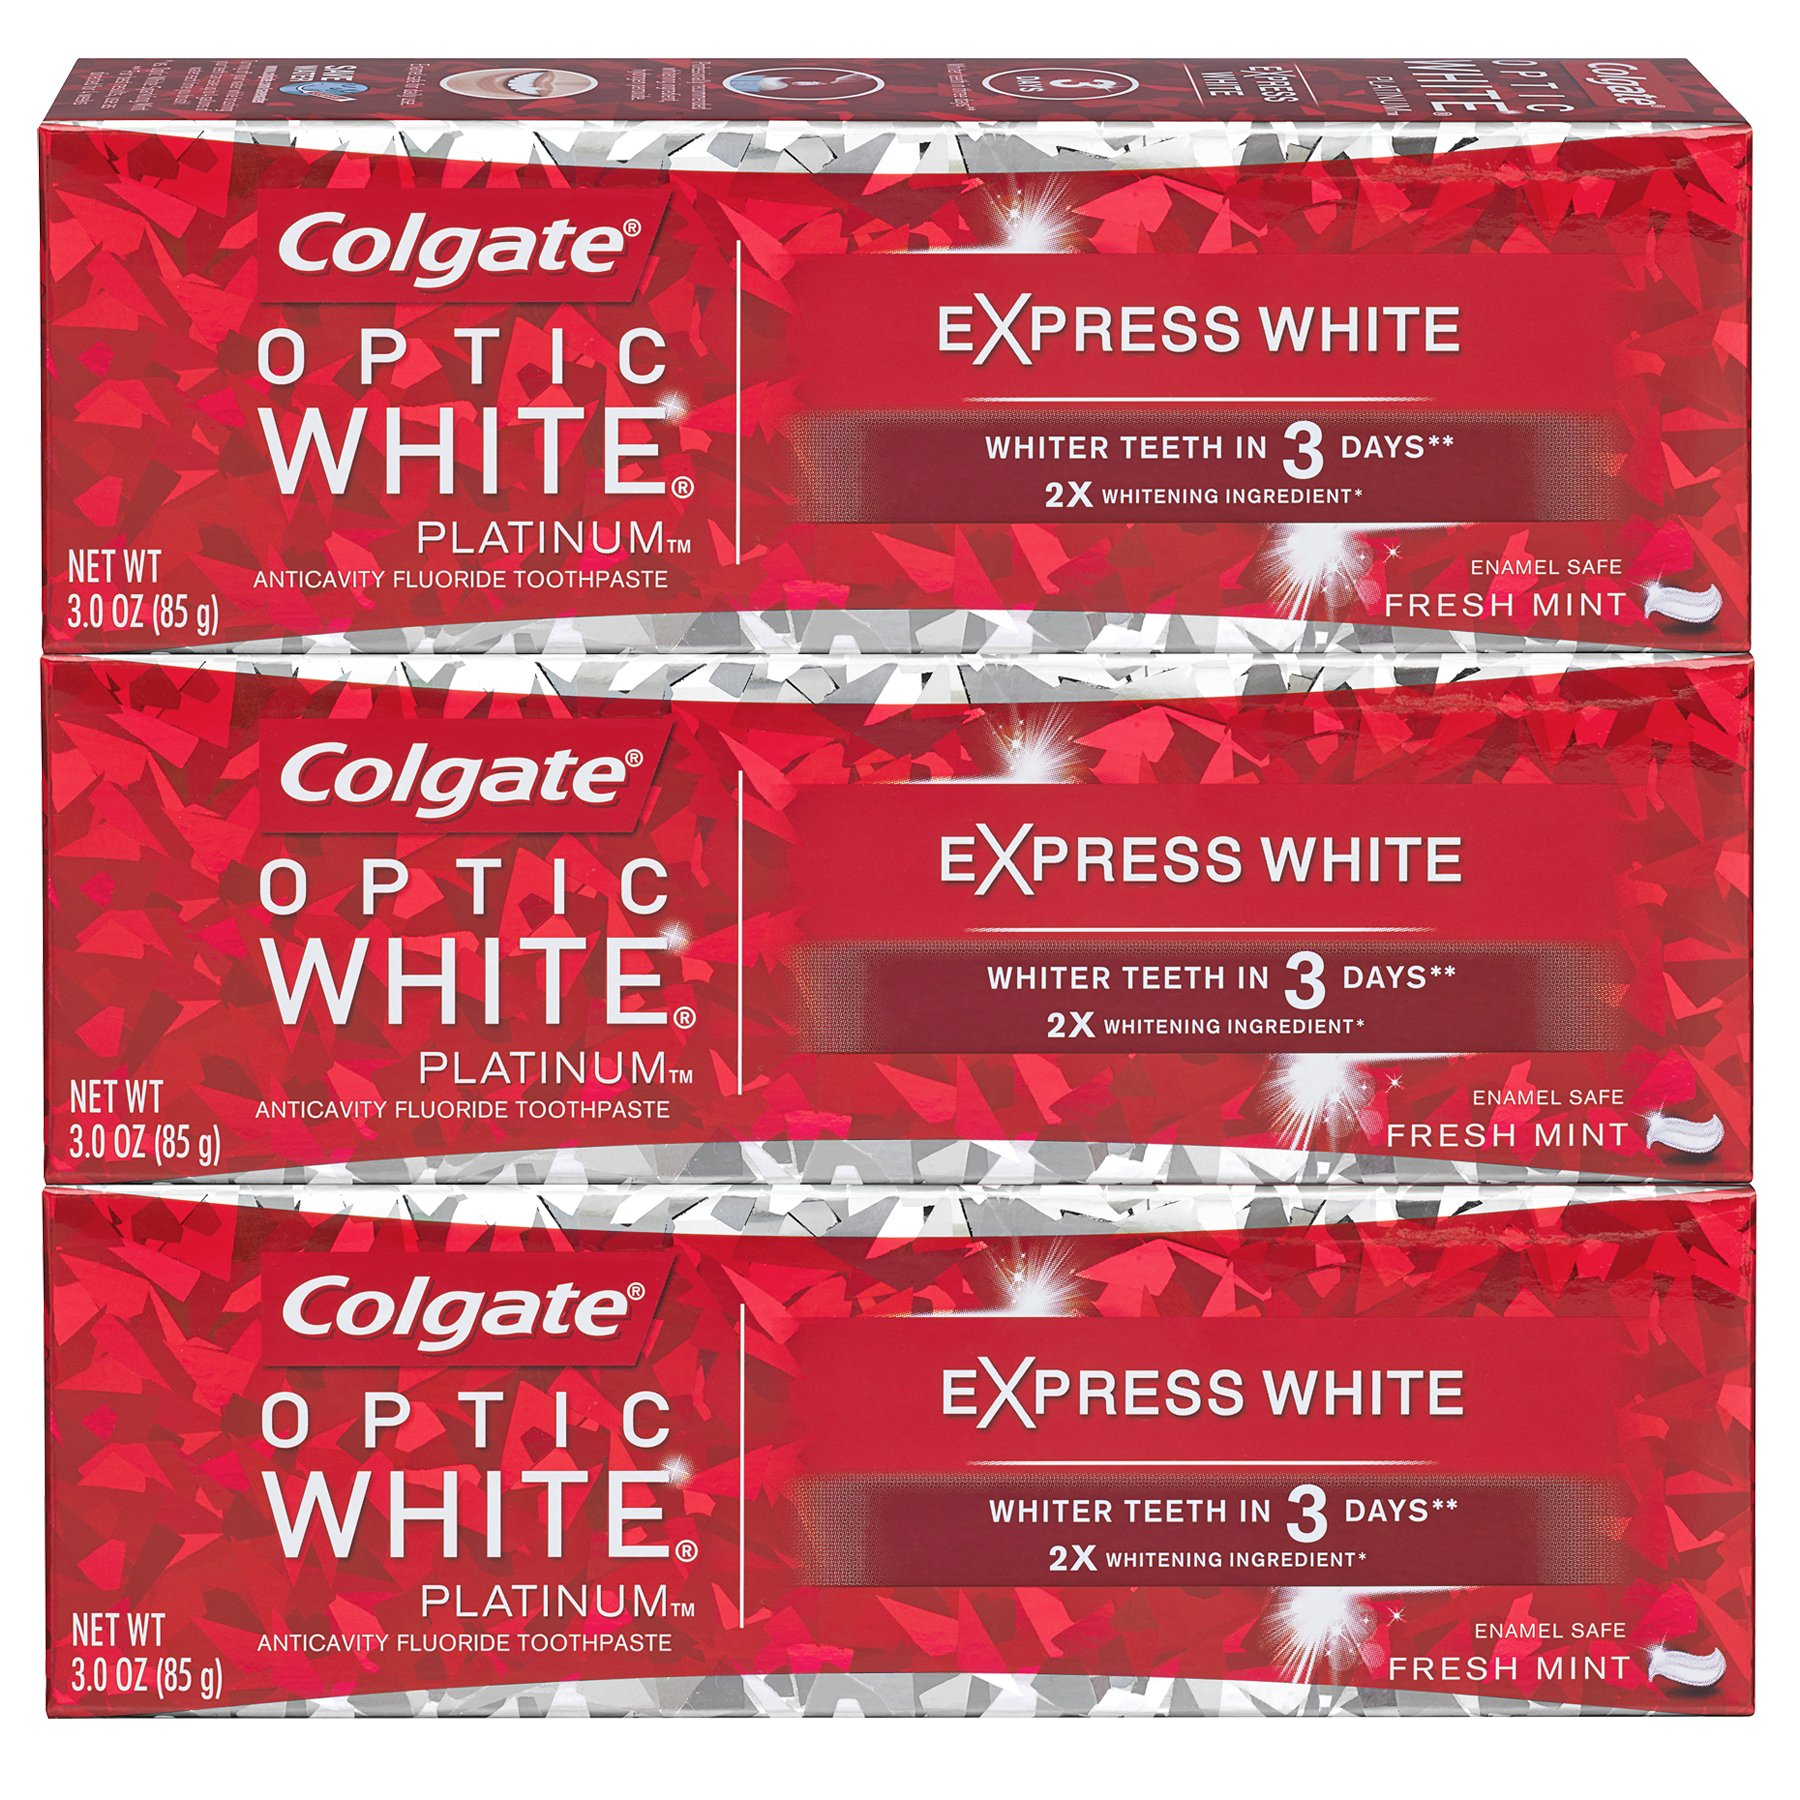 Colgate Optic White Express White Whitening Toothpaste - 3 ounce (3 Pack) by Colgate (Image #2)